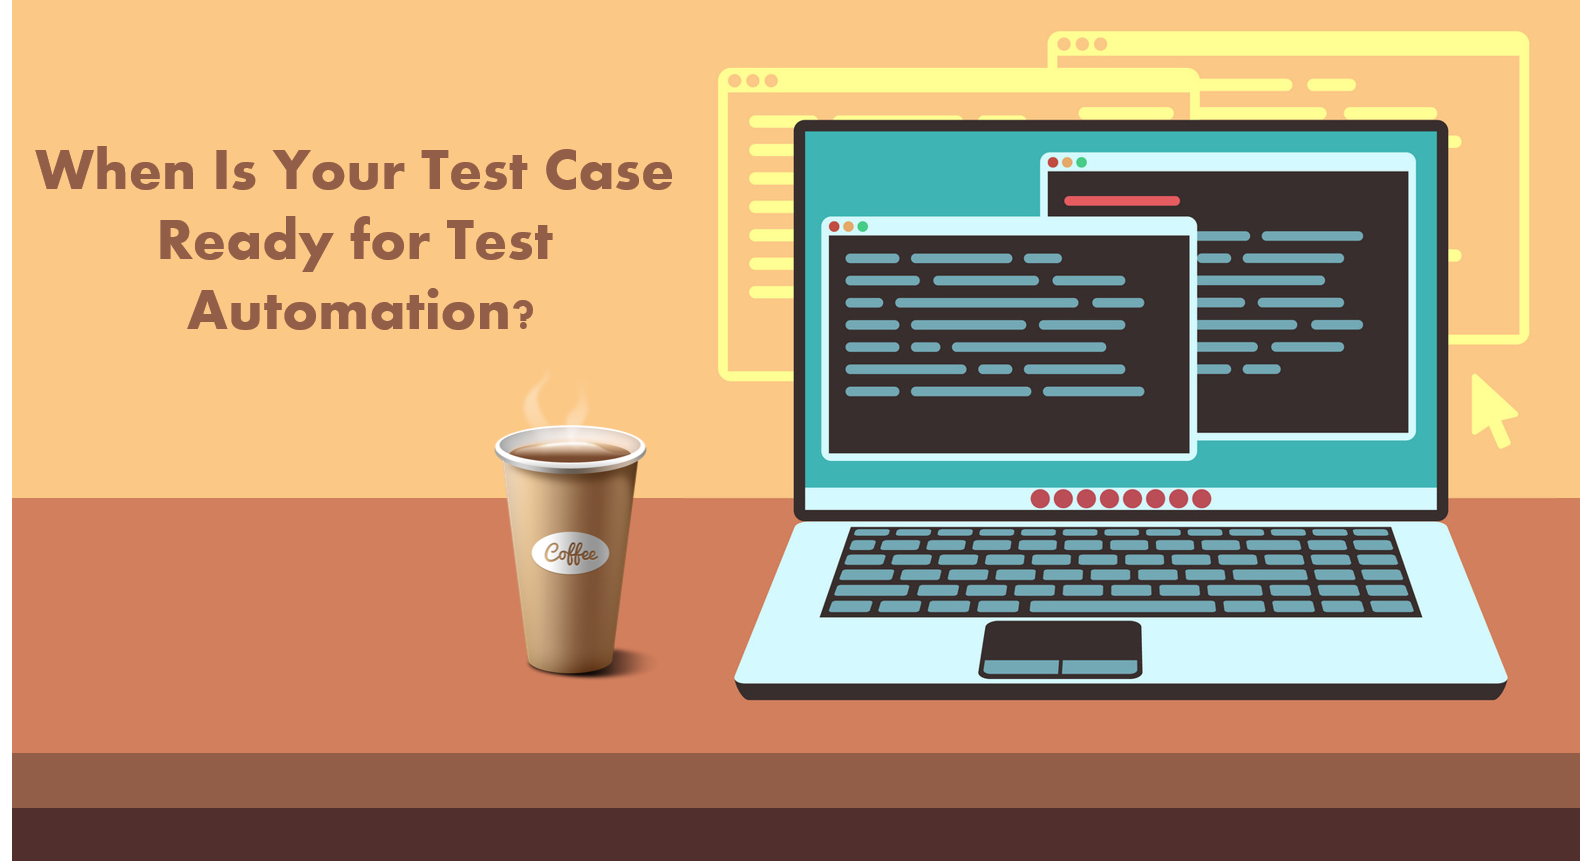 When is Your Test Case Ready For Test Automation?